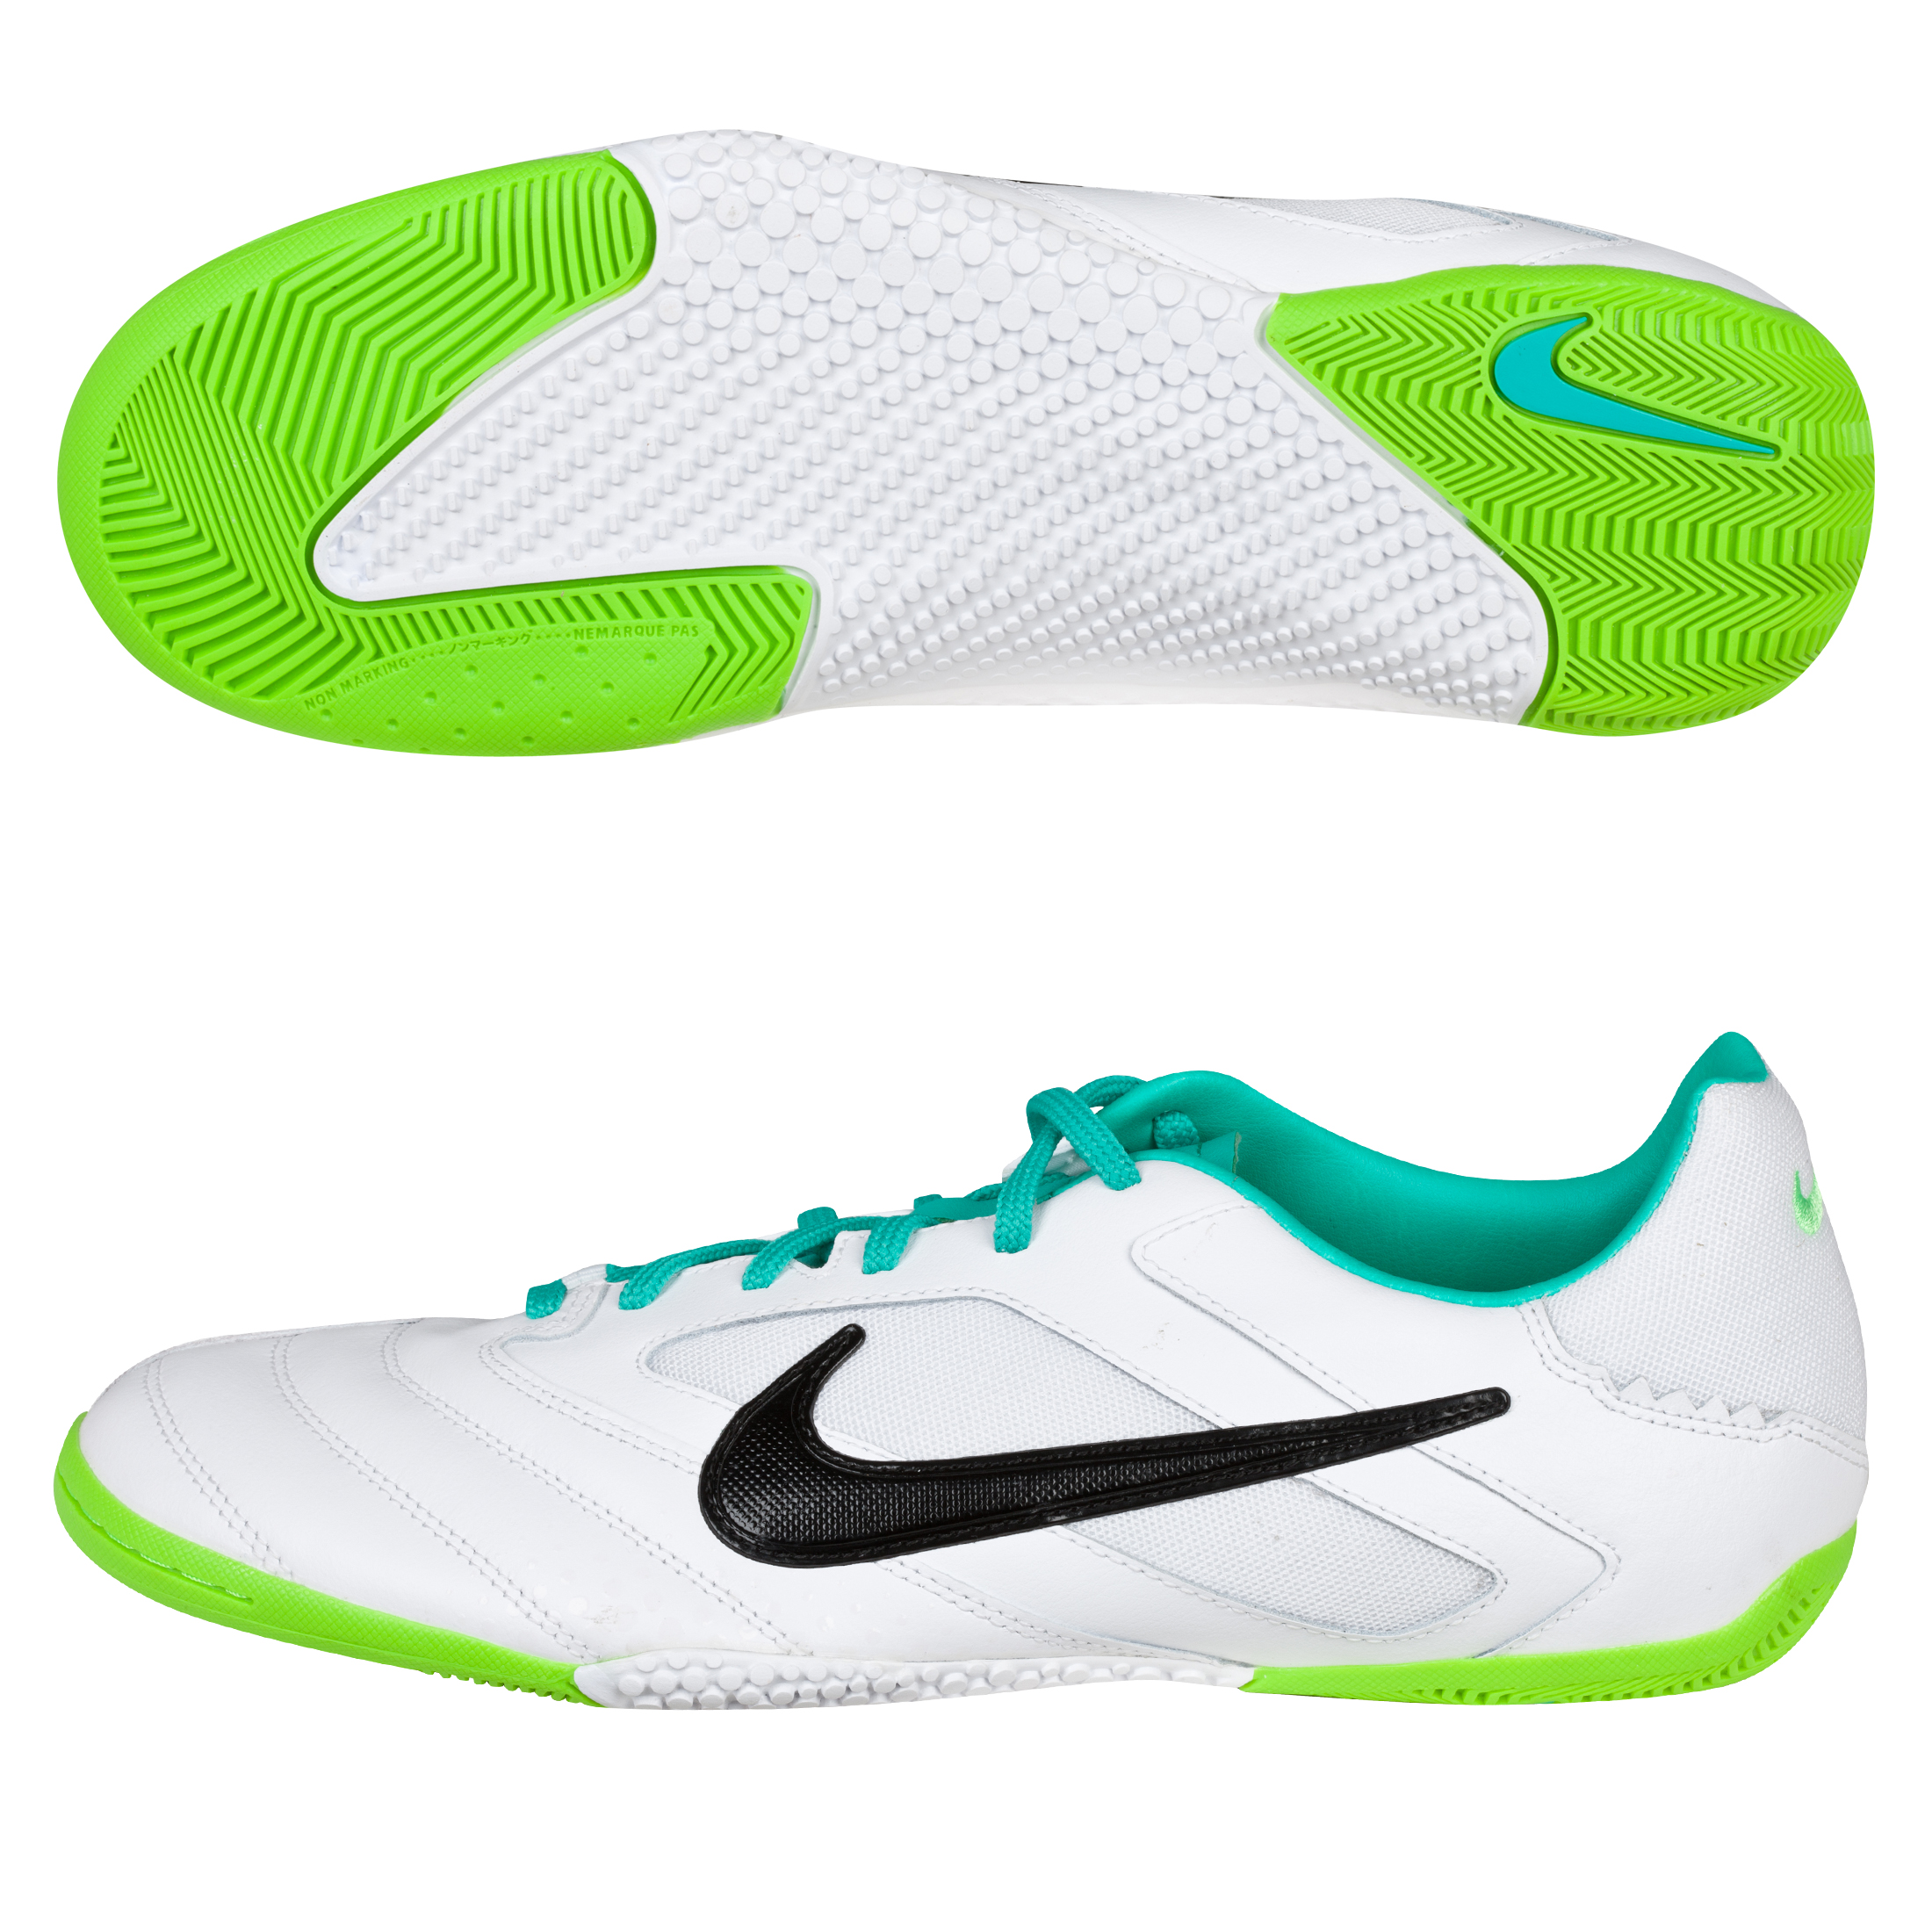 Nike5 Elastico Pro Trainers - White/Black/Electric Green